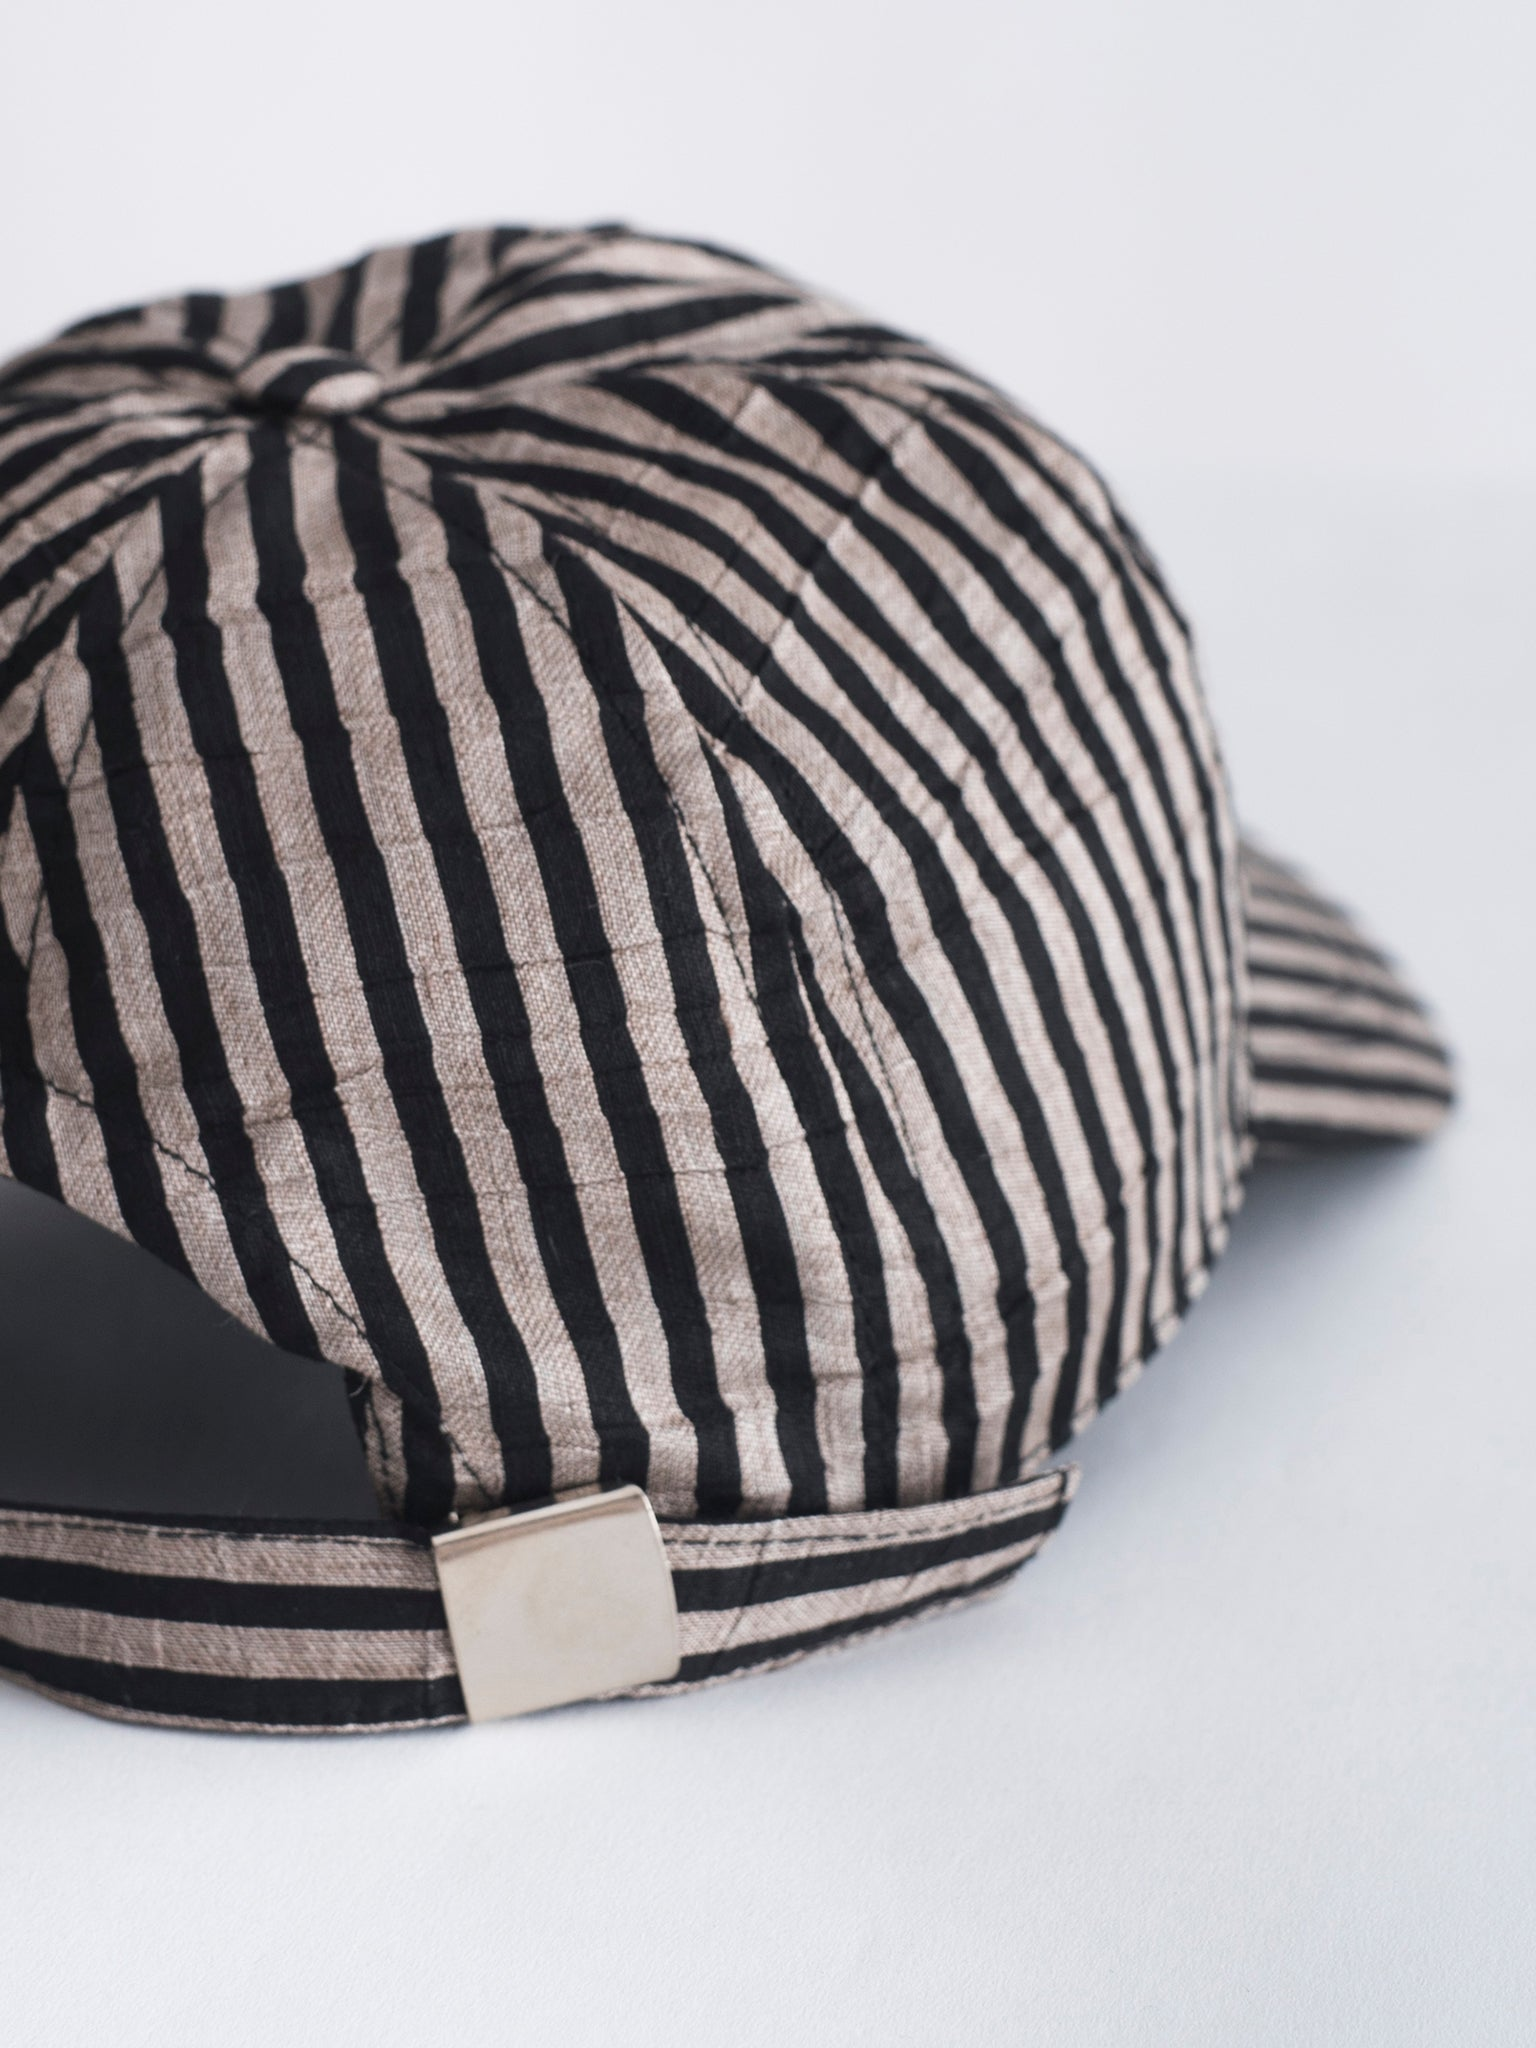 Udad cap, sand stripes